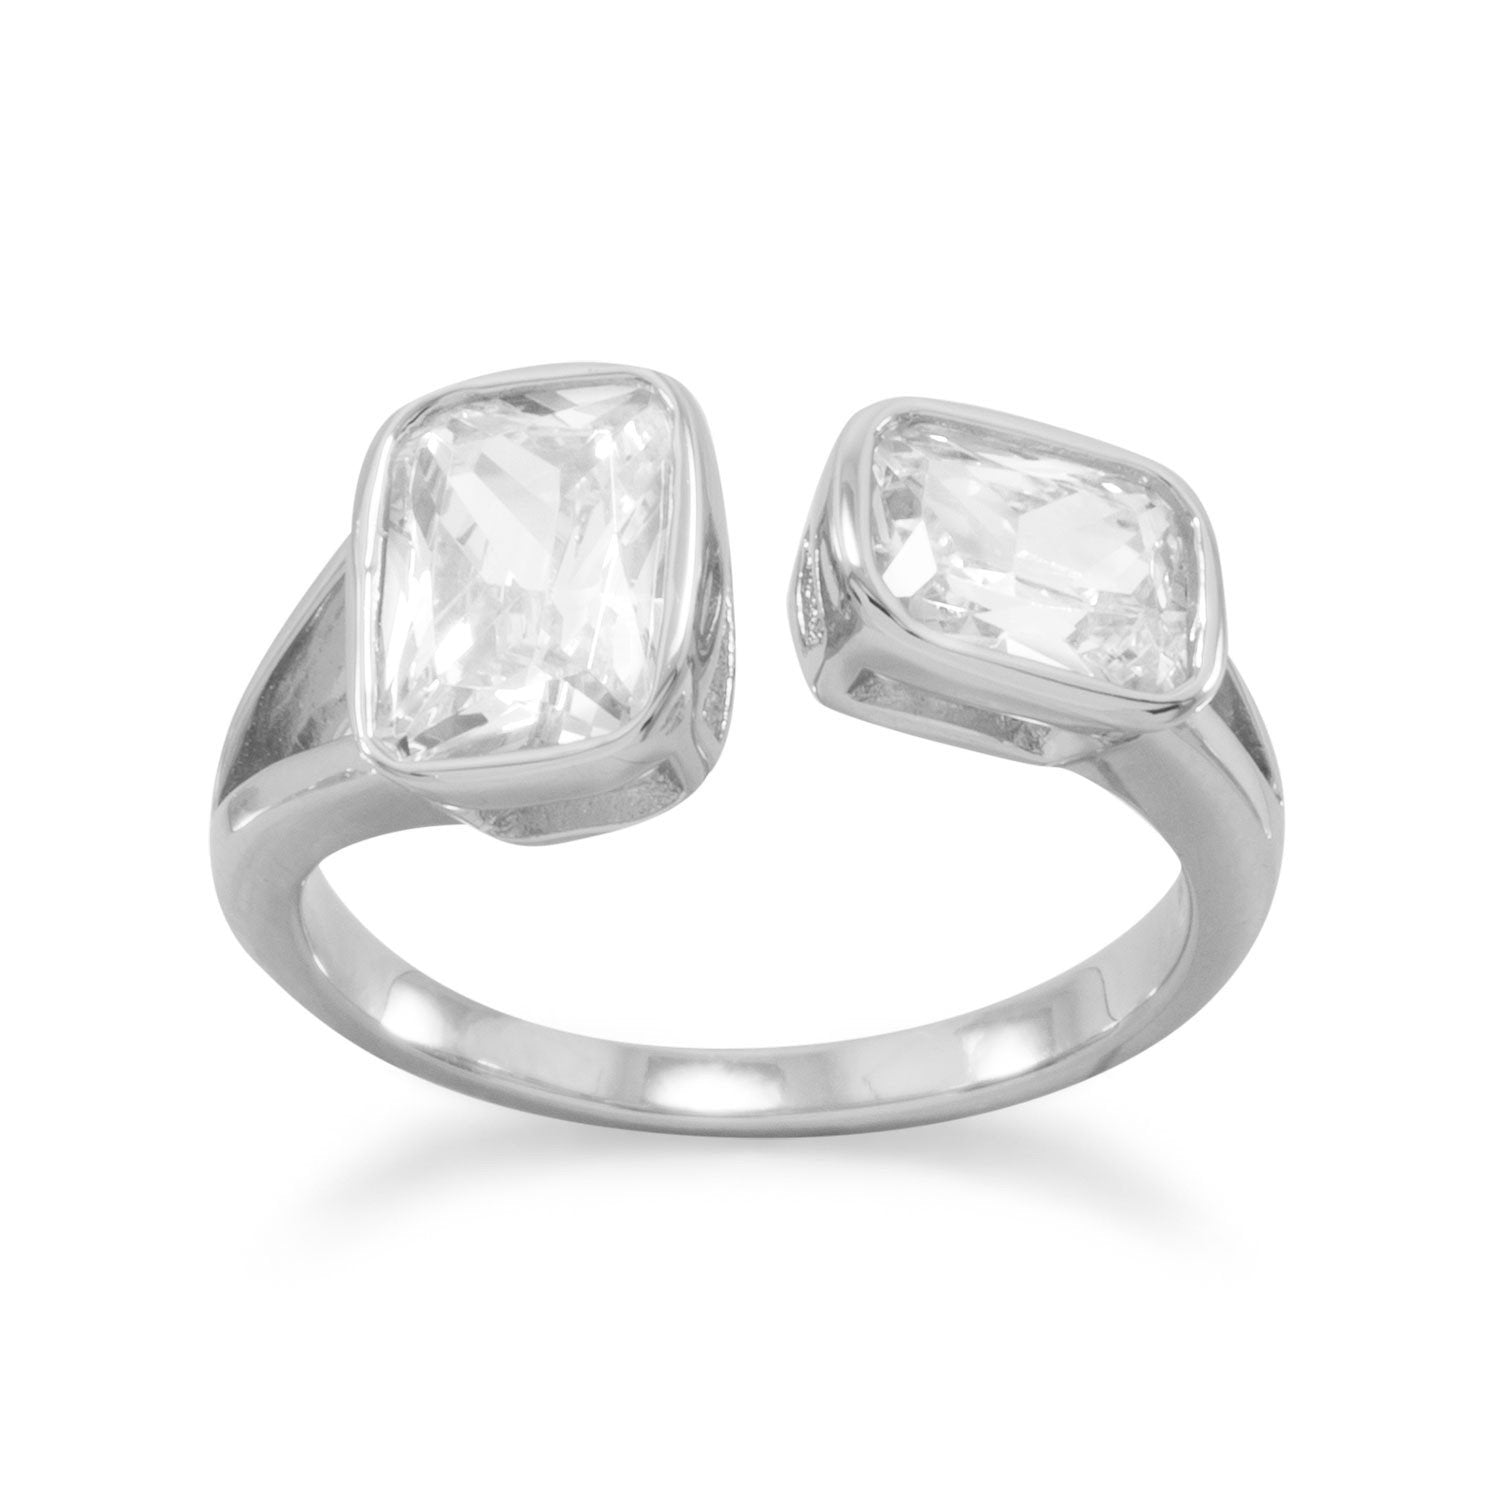 Rhodium Plated CZ Split Design Ring - Rocky Mt. Outlet Inc - Shop & Save 24/7